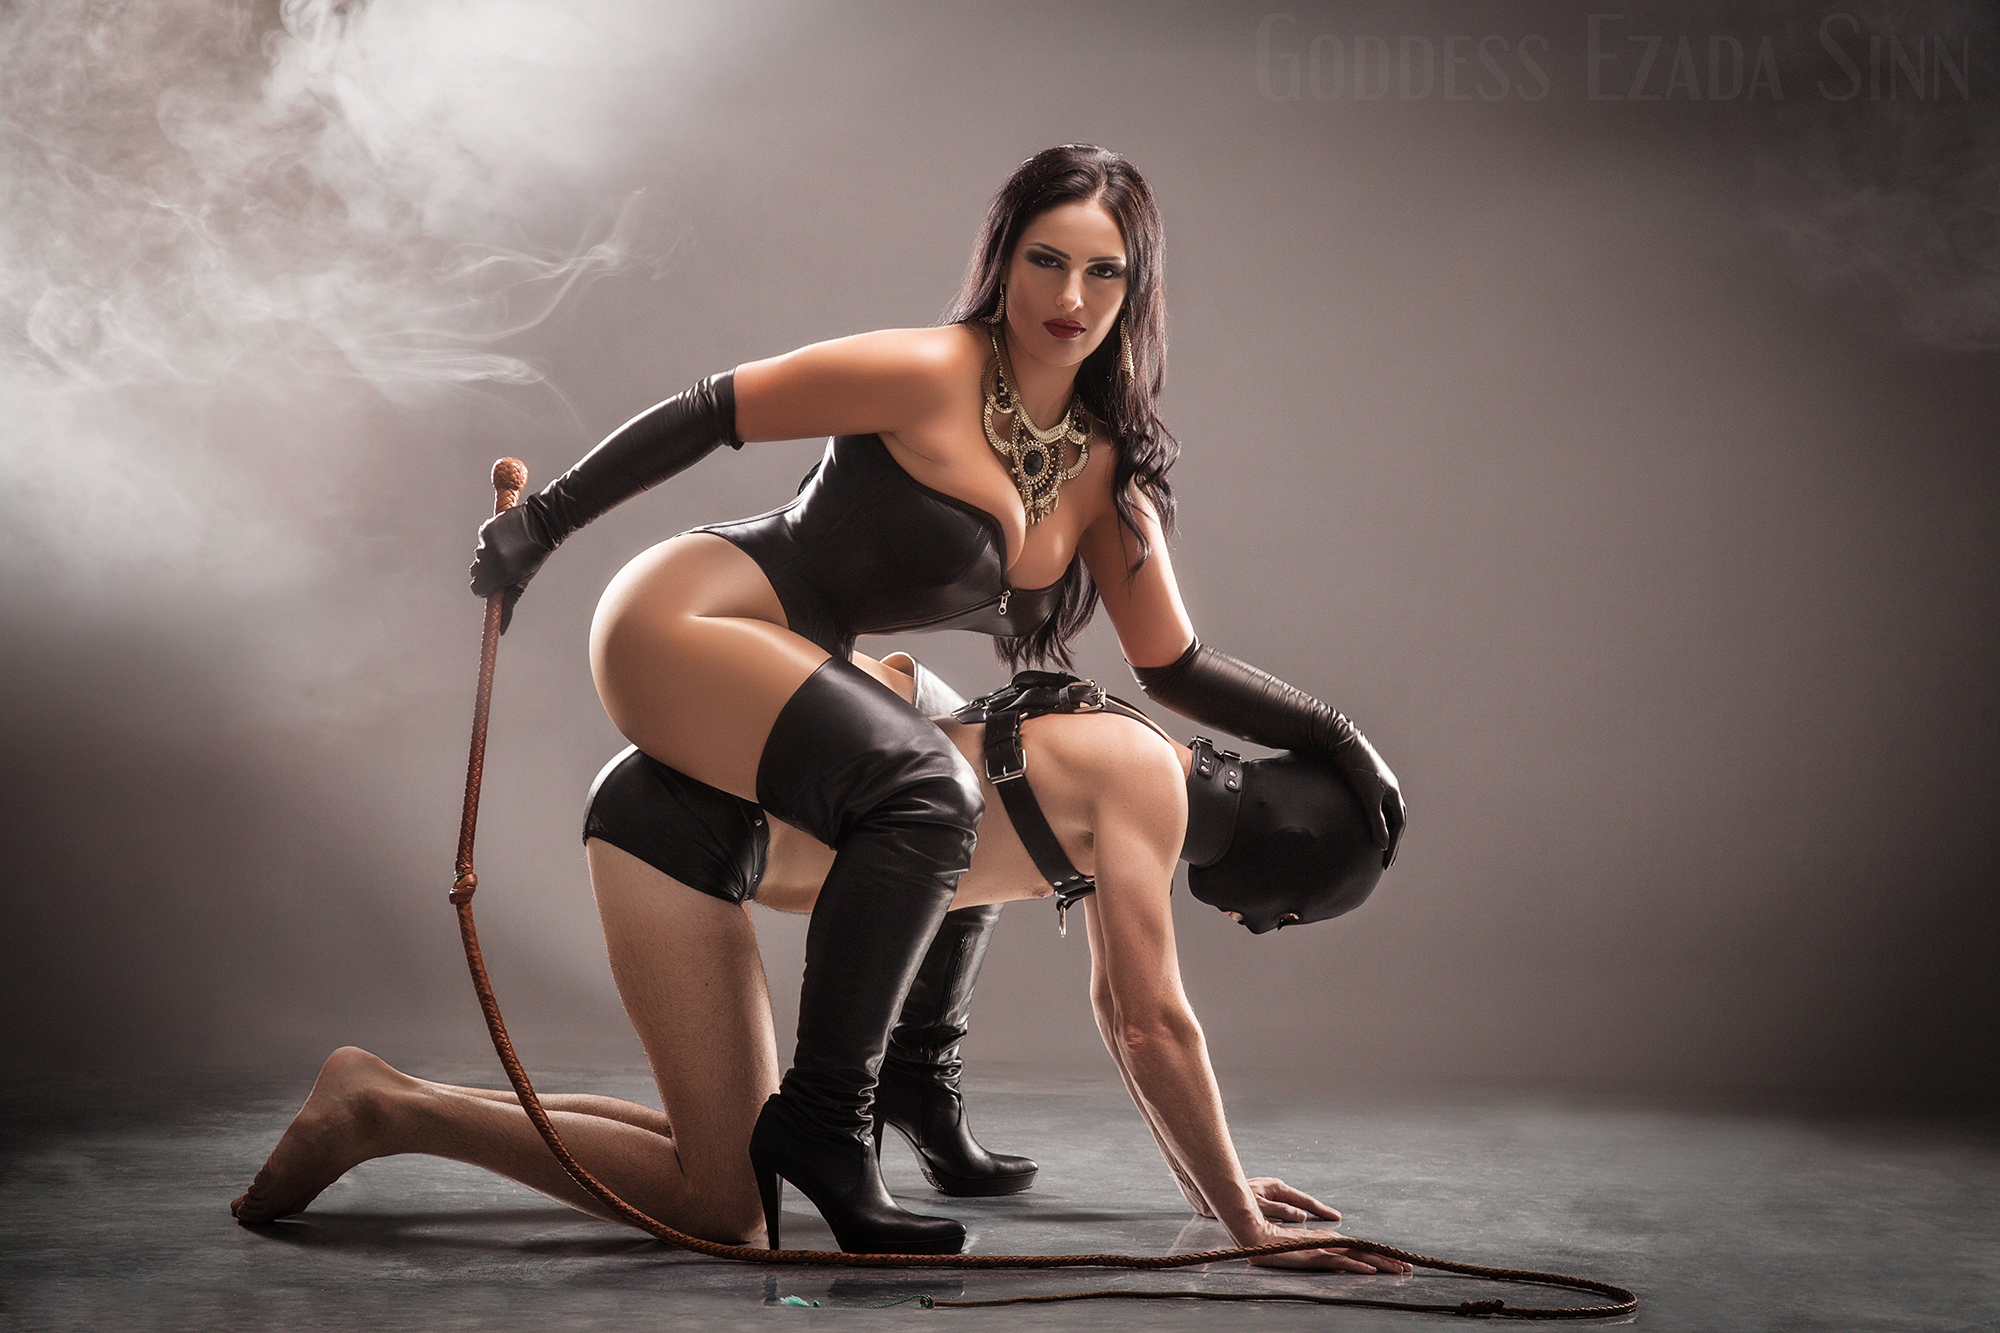 Goddess Ezada Sinn leather female supremacy femdom whip boots slavery